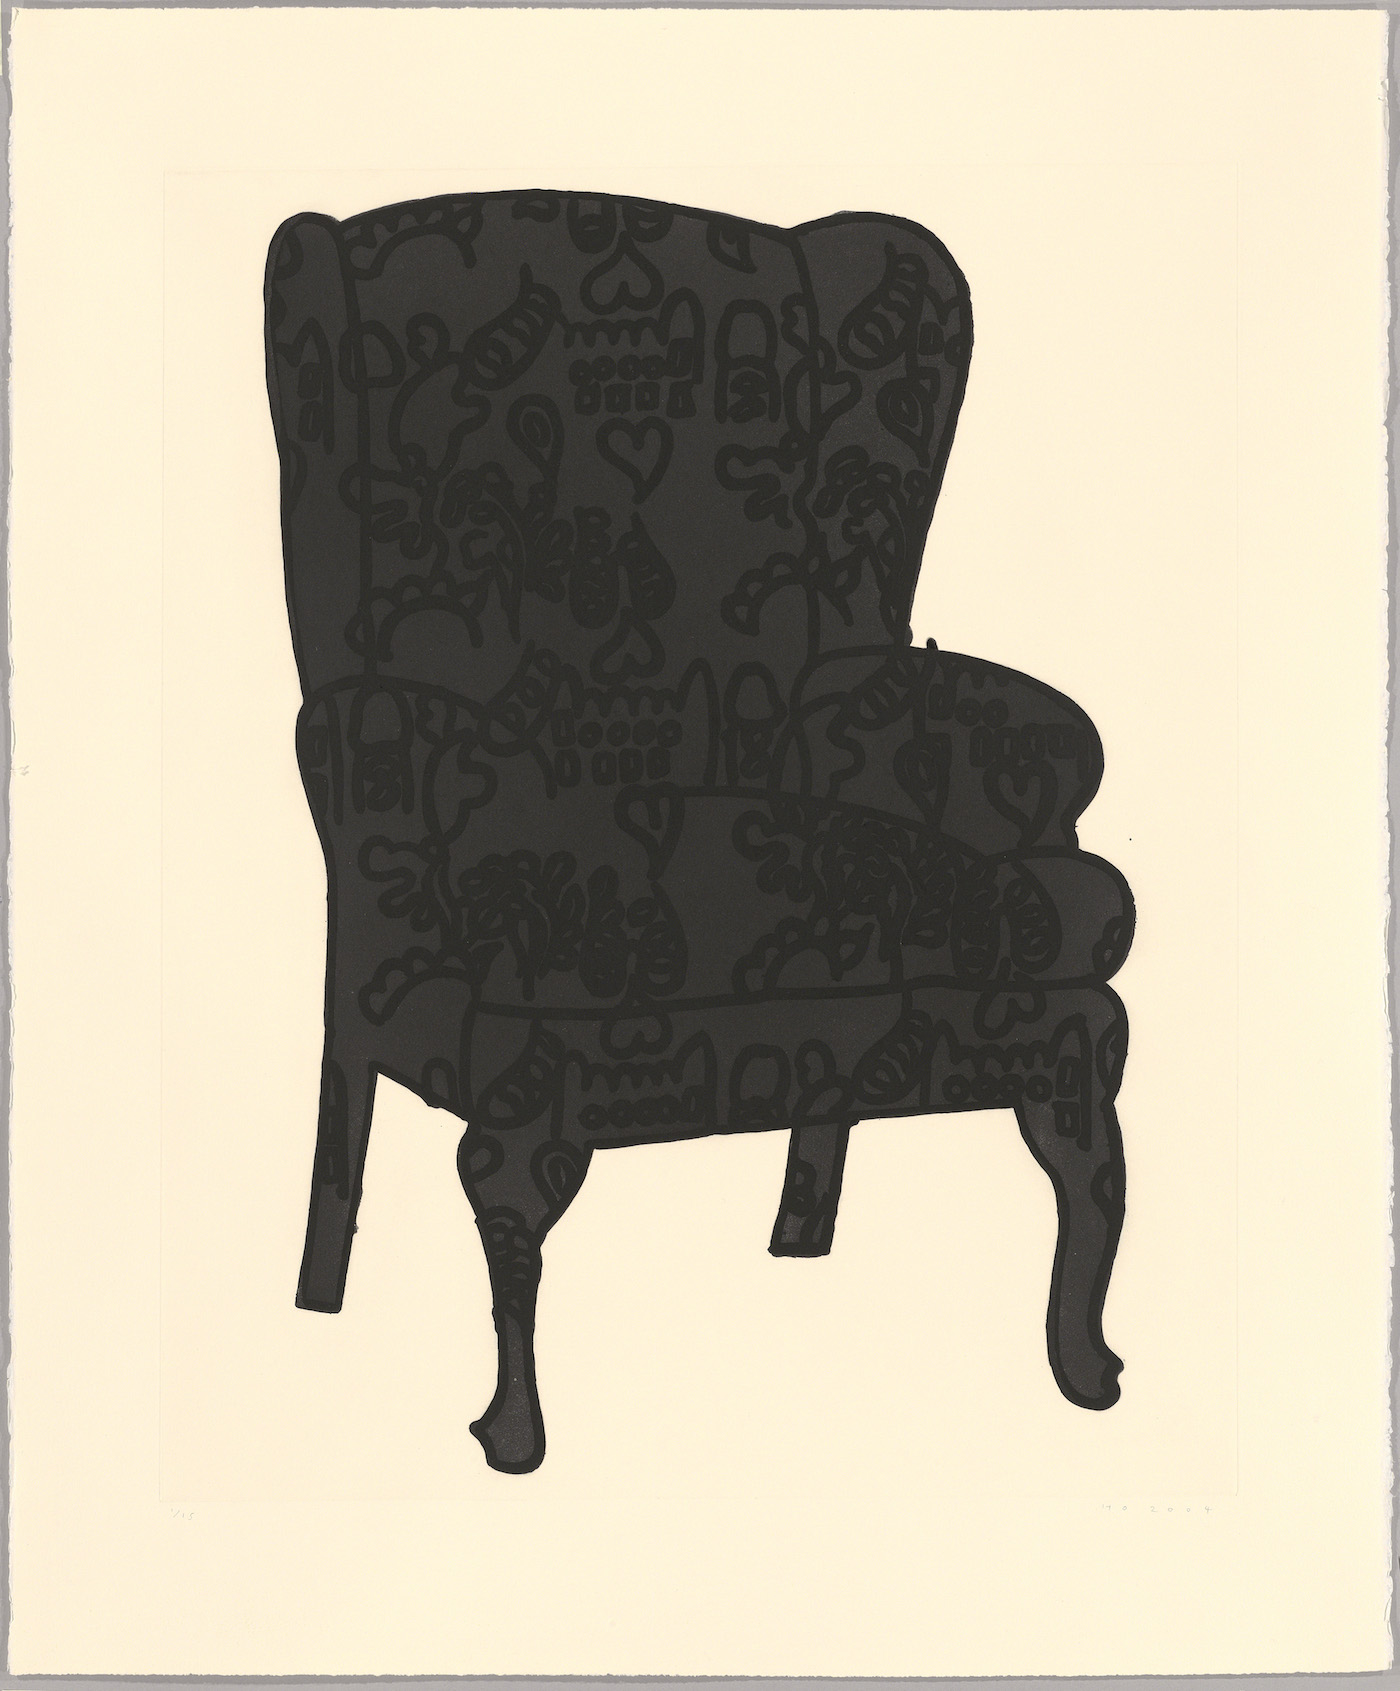 Humphrey Ocean, Black Love Chair, 2006